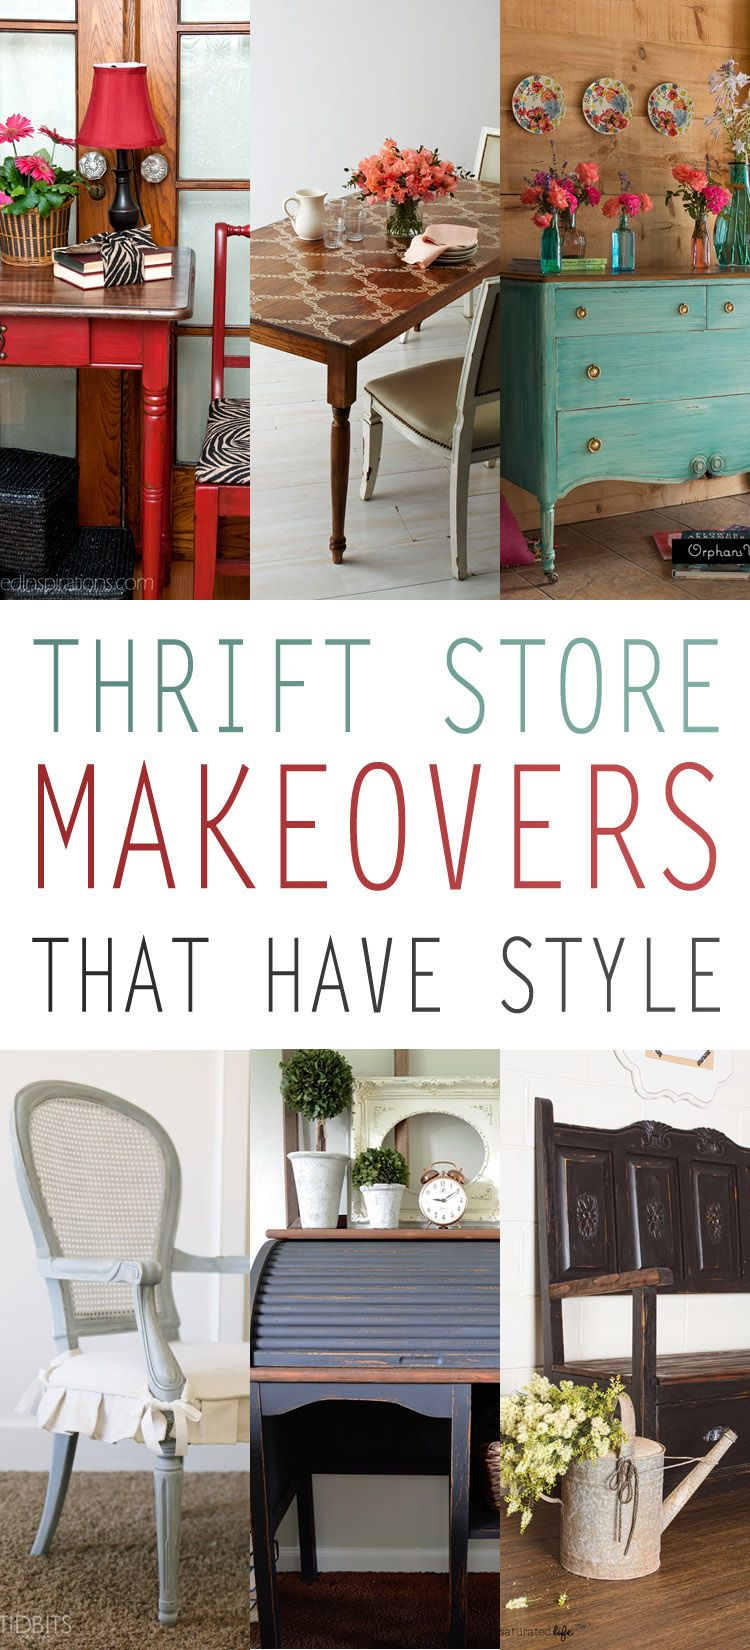 thrift store makeovers that have style thrift store online pinterest thrifting. Black Bedroom Furniture Sets. Home Design Ideas